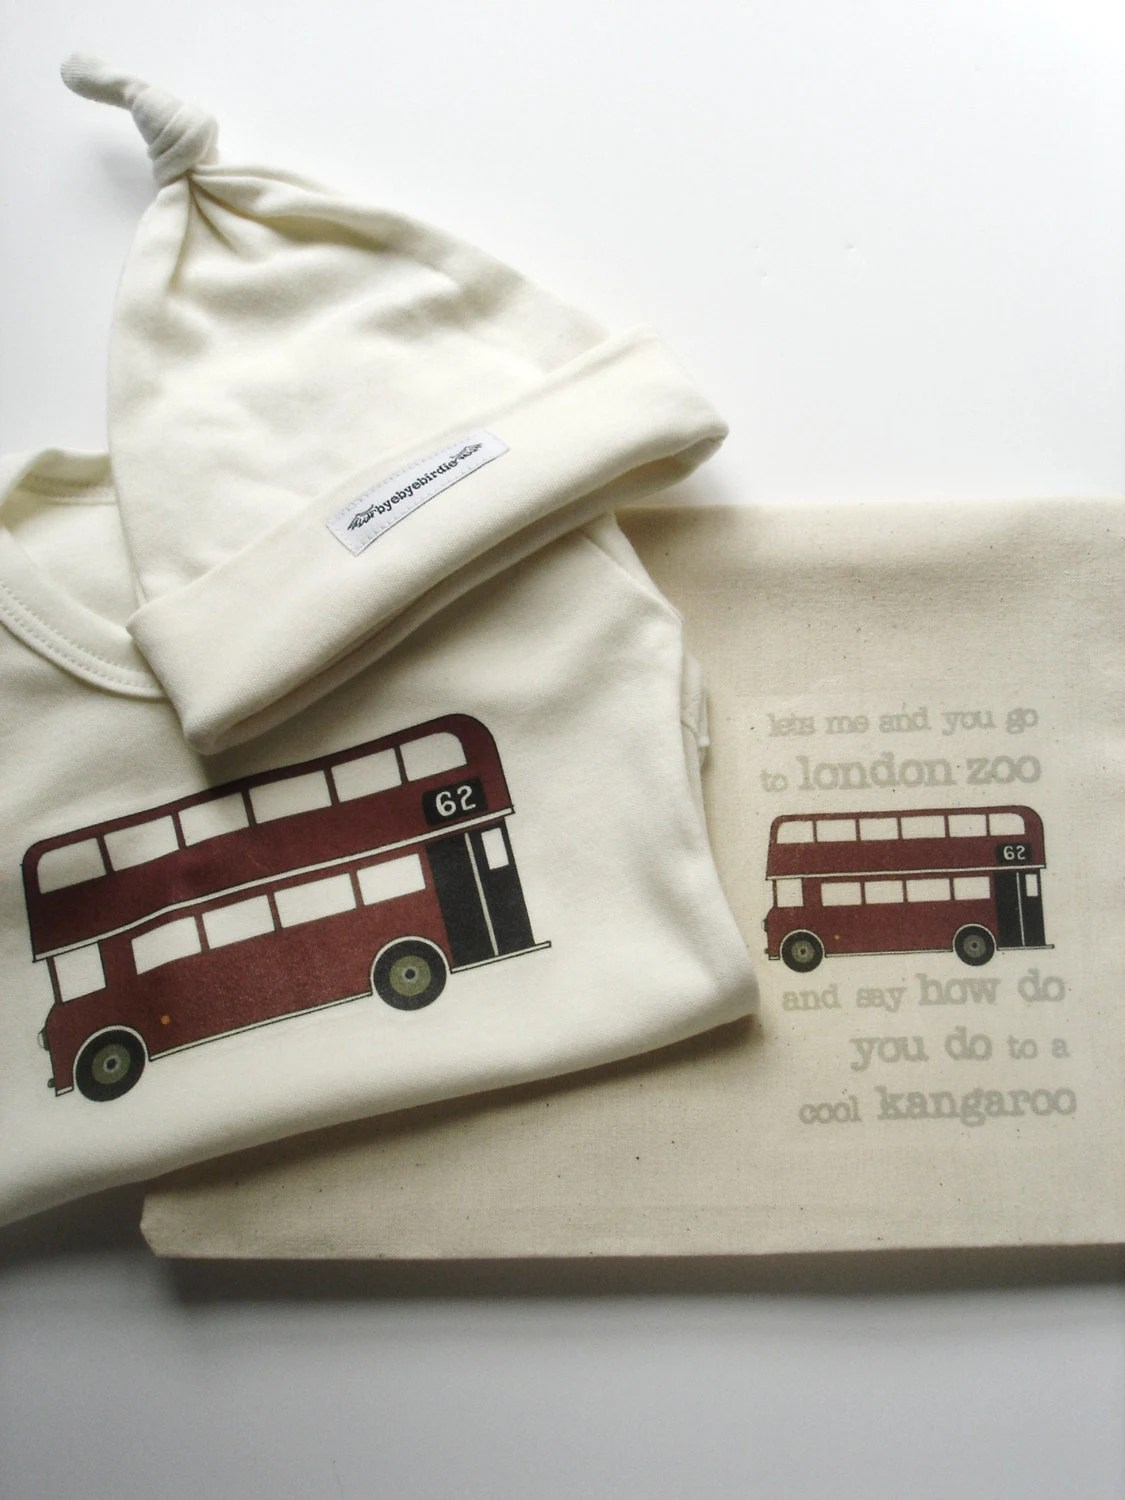 perfect olympics baby gift 'tiny bundle' 3 piece onesie, hat & bag - hand printed london bus